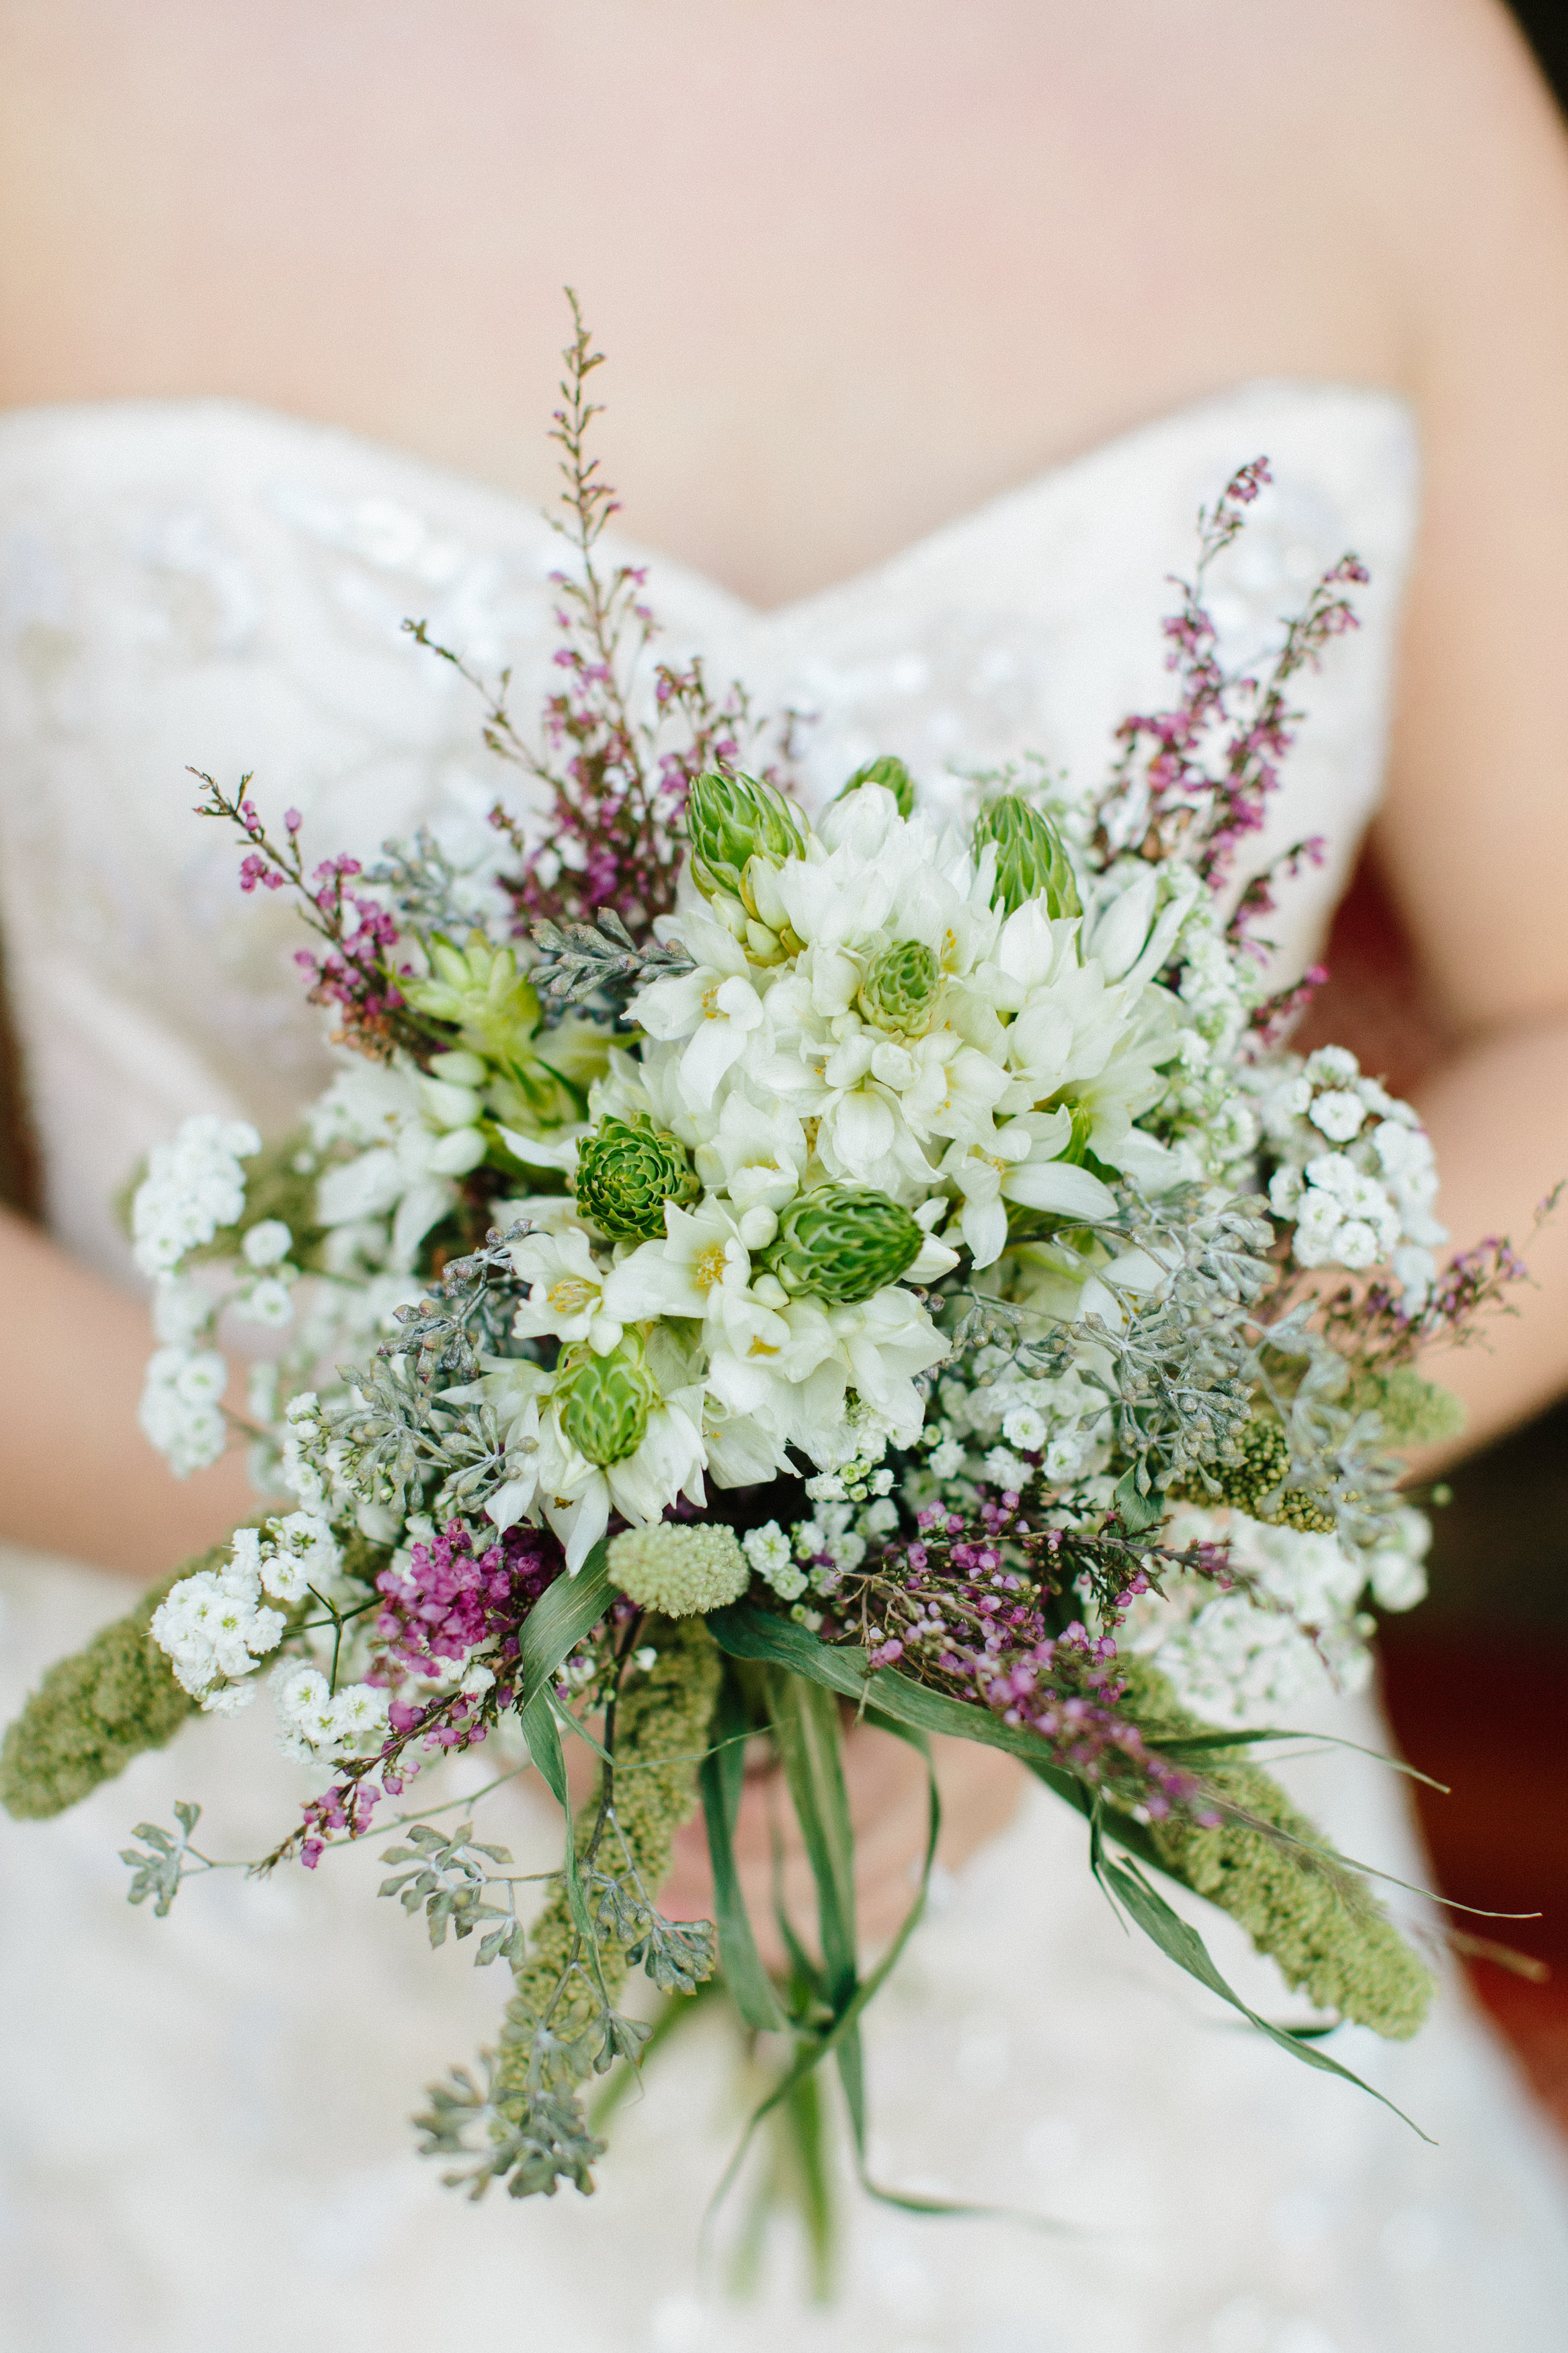 Photo AND bouquet by  Daytona May Photography